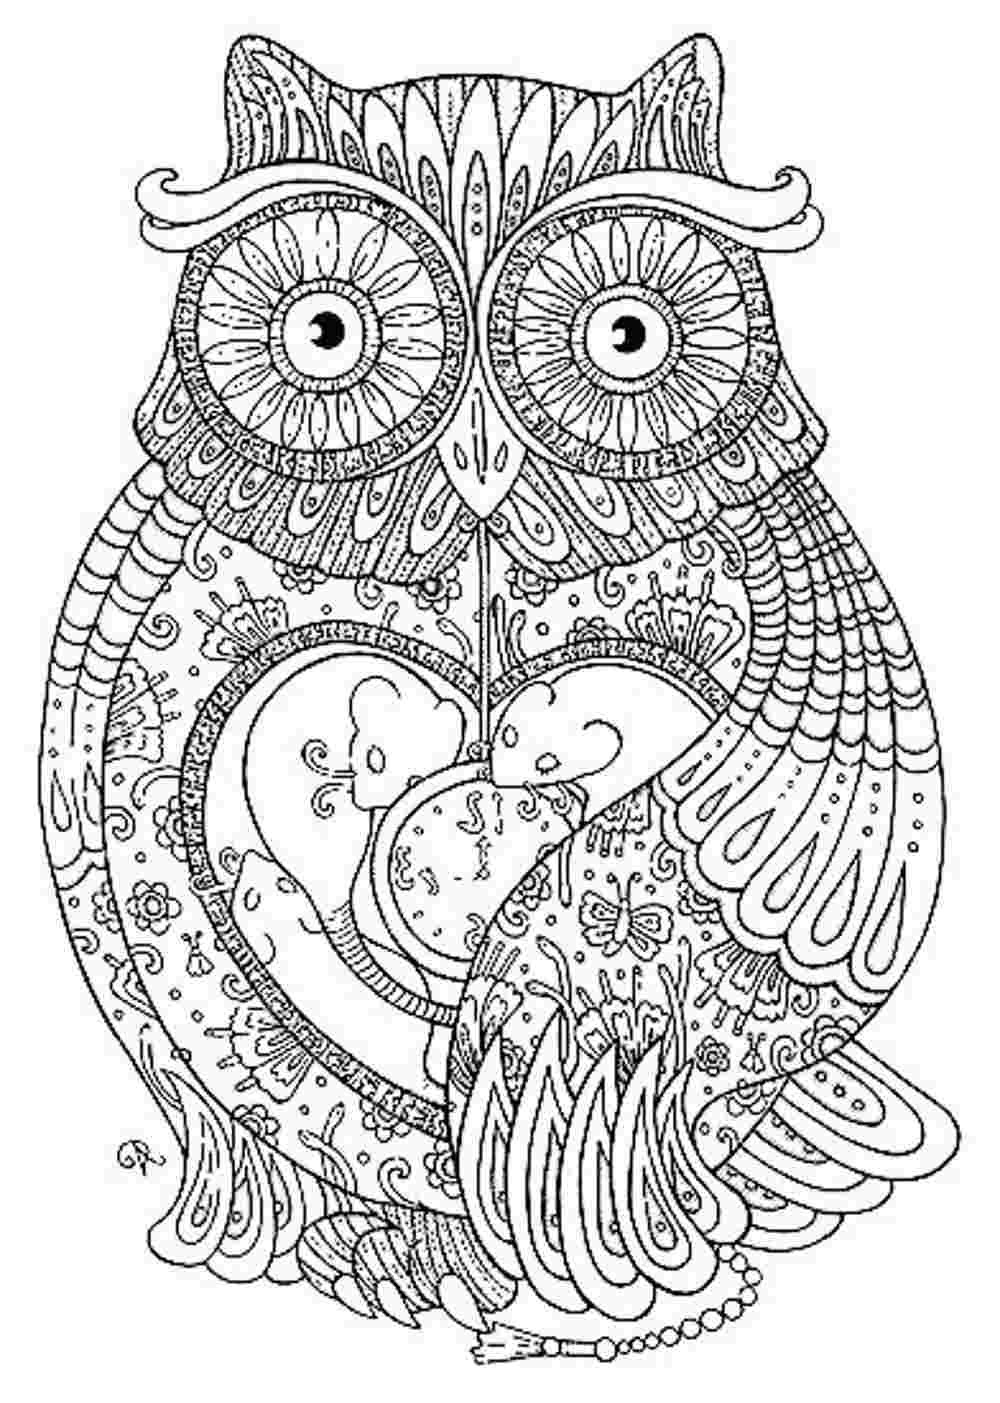 Best ideas about Printable Coloring Pages For Adults Free . Save or Pin 44 Awesome Free Printable Coloring Pages for Adults Now.